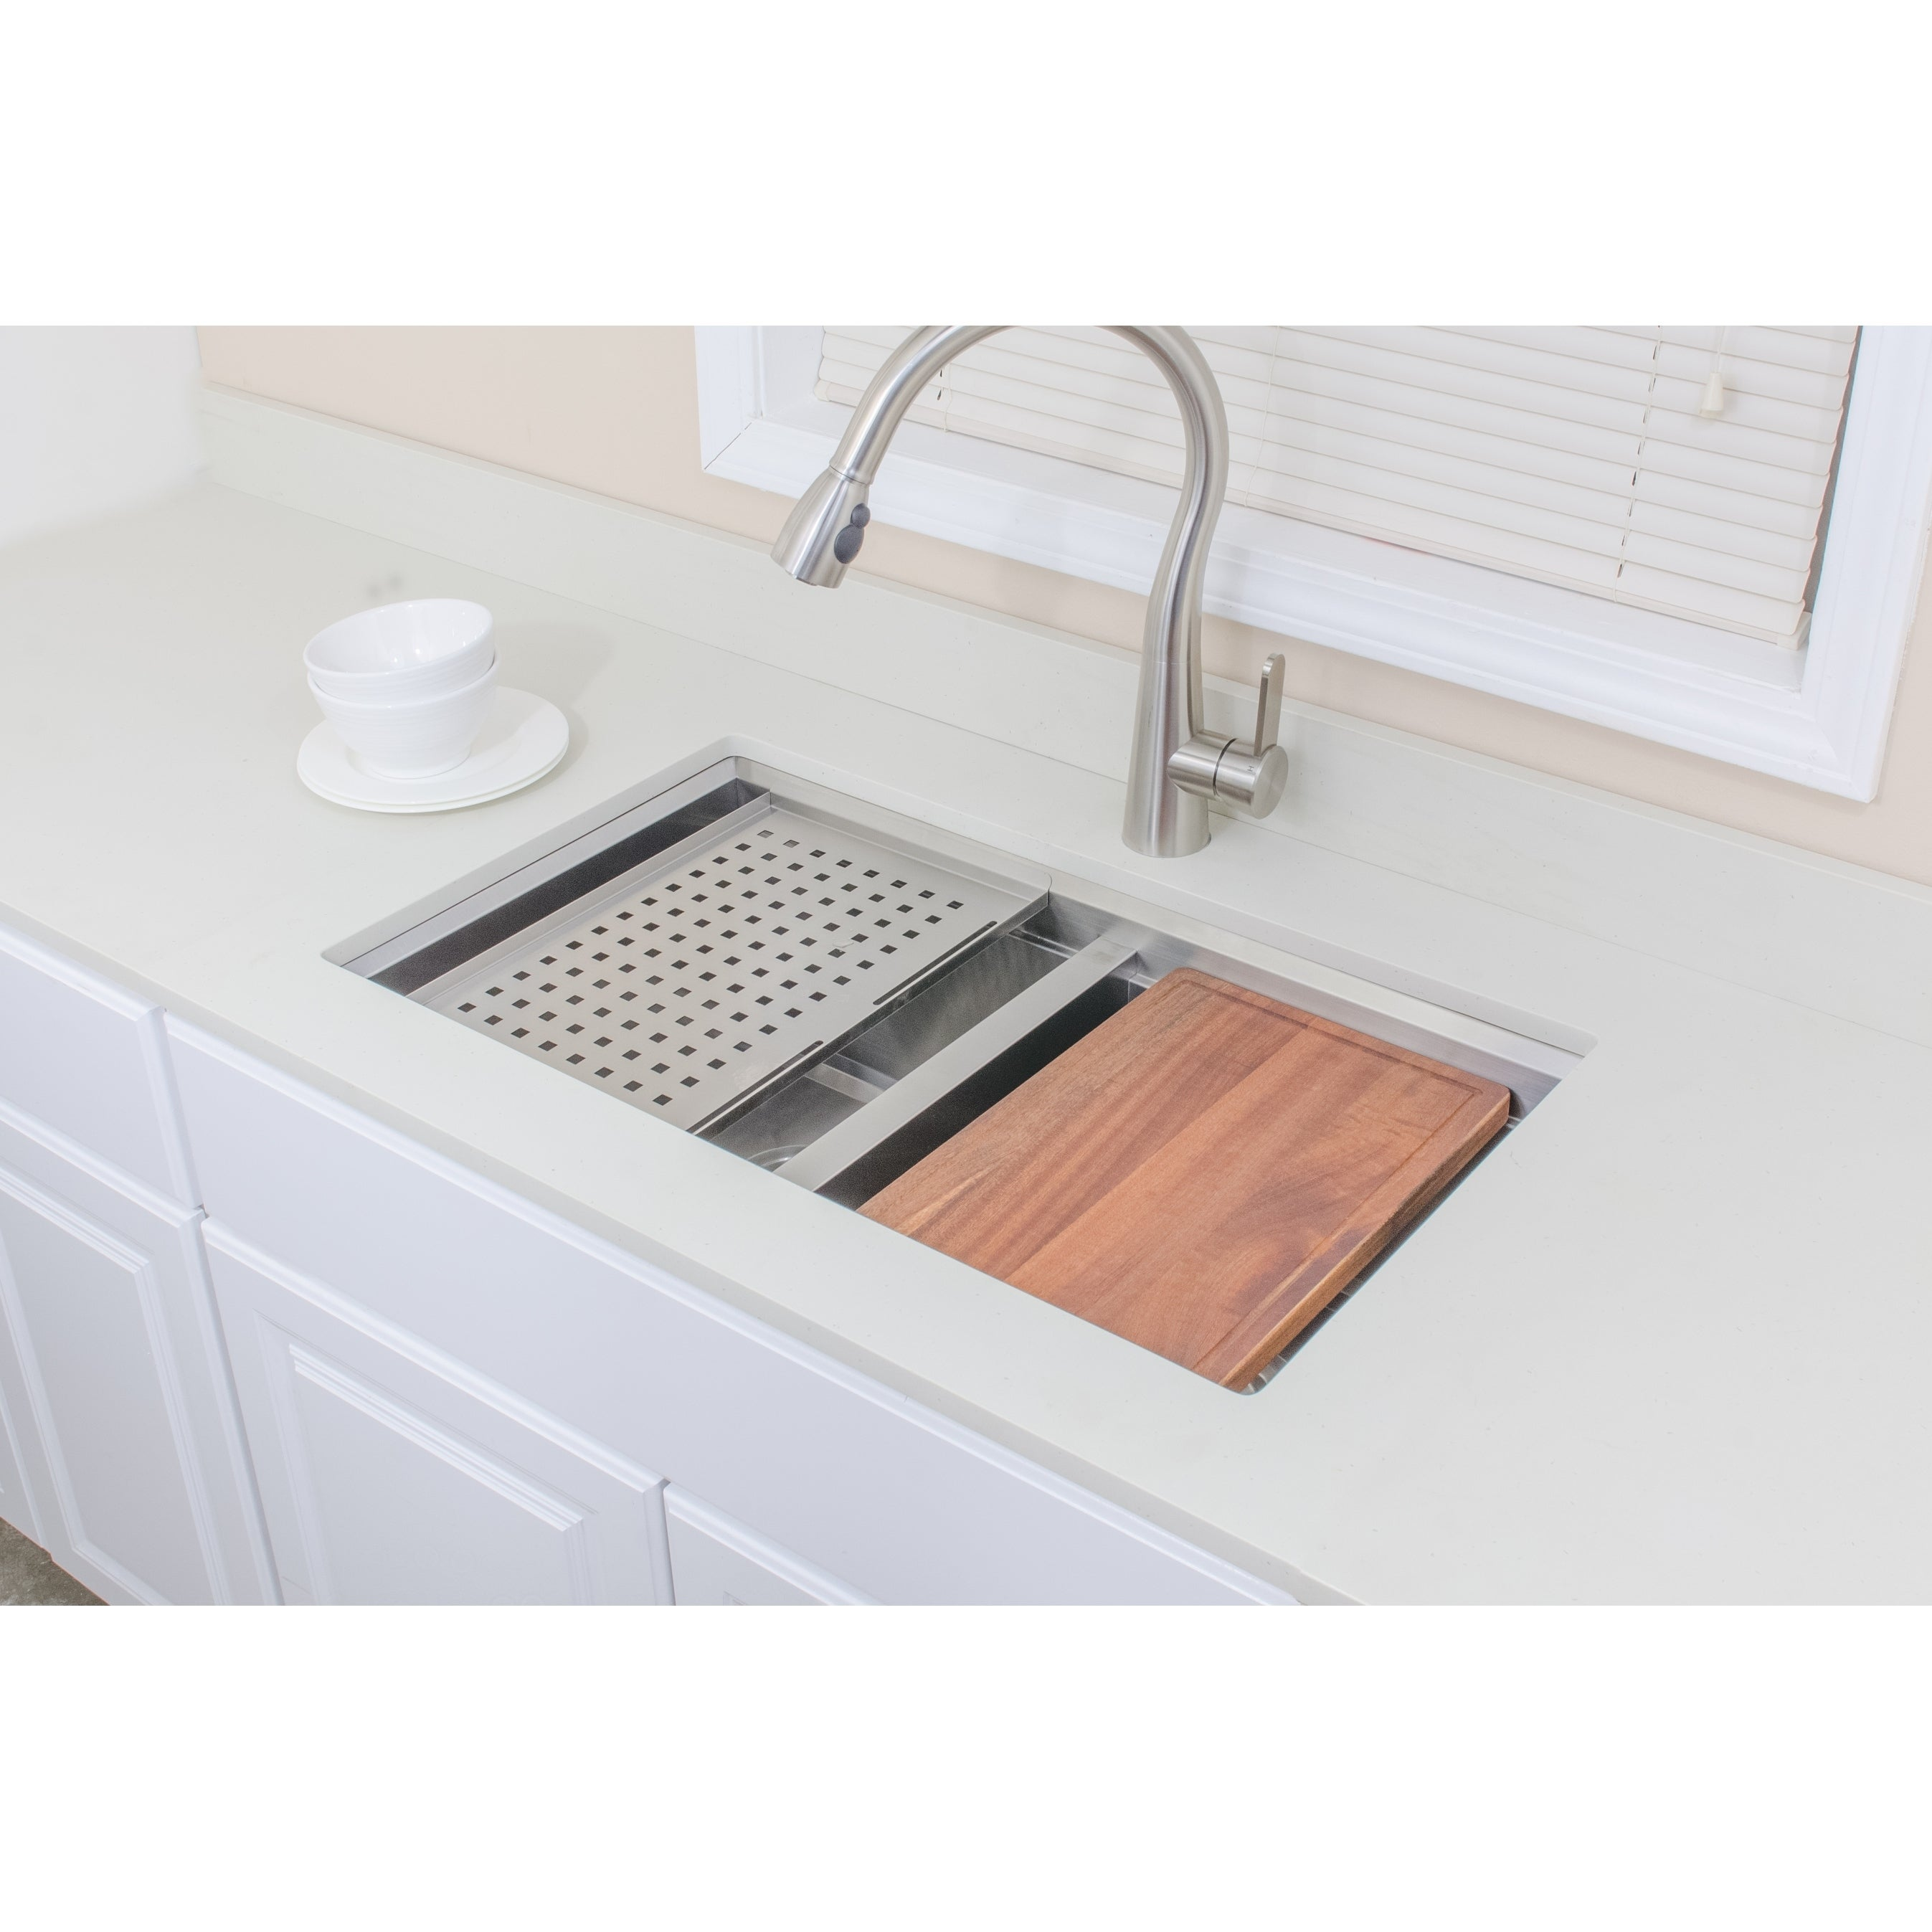 Wells Sinkware Series 32 Inch Undermount 50 Double Stainless Steel Kitchen Sink W Companion Colander And Cutting Board